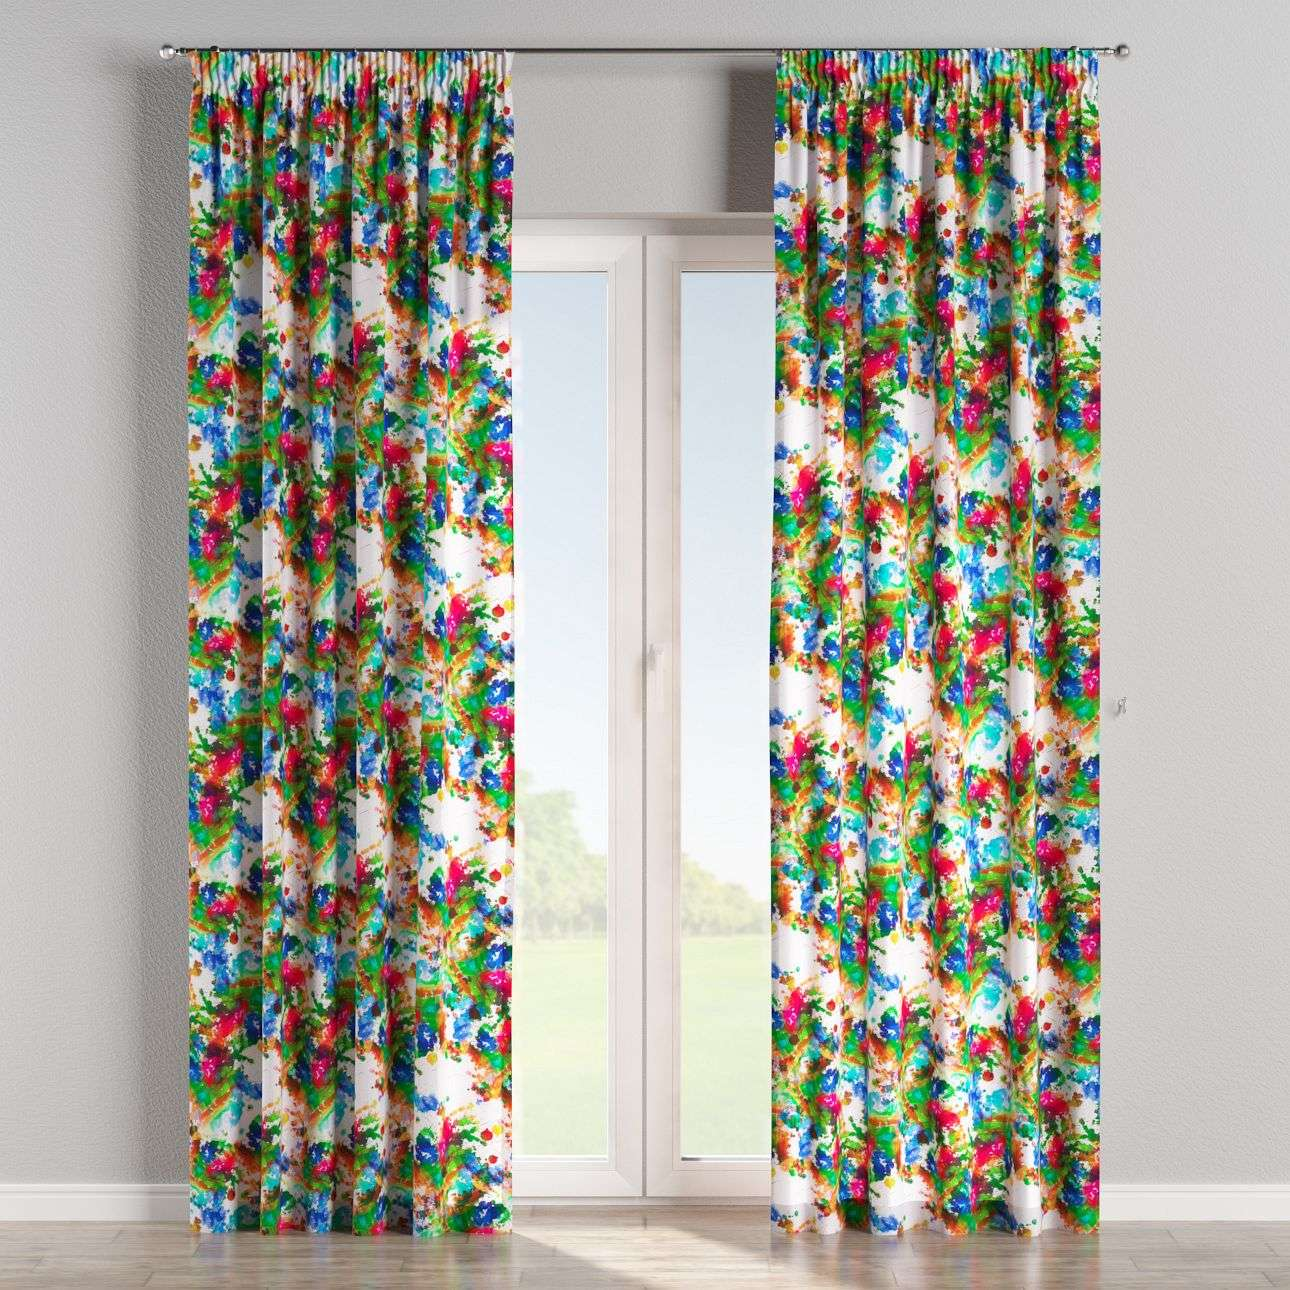 Pencil pleat curtains 130 x 260 cm (51 x 102 inch) in collection New Art, fabric: 140-23